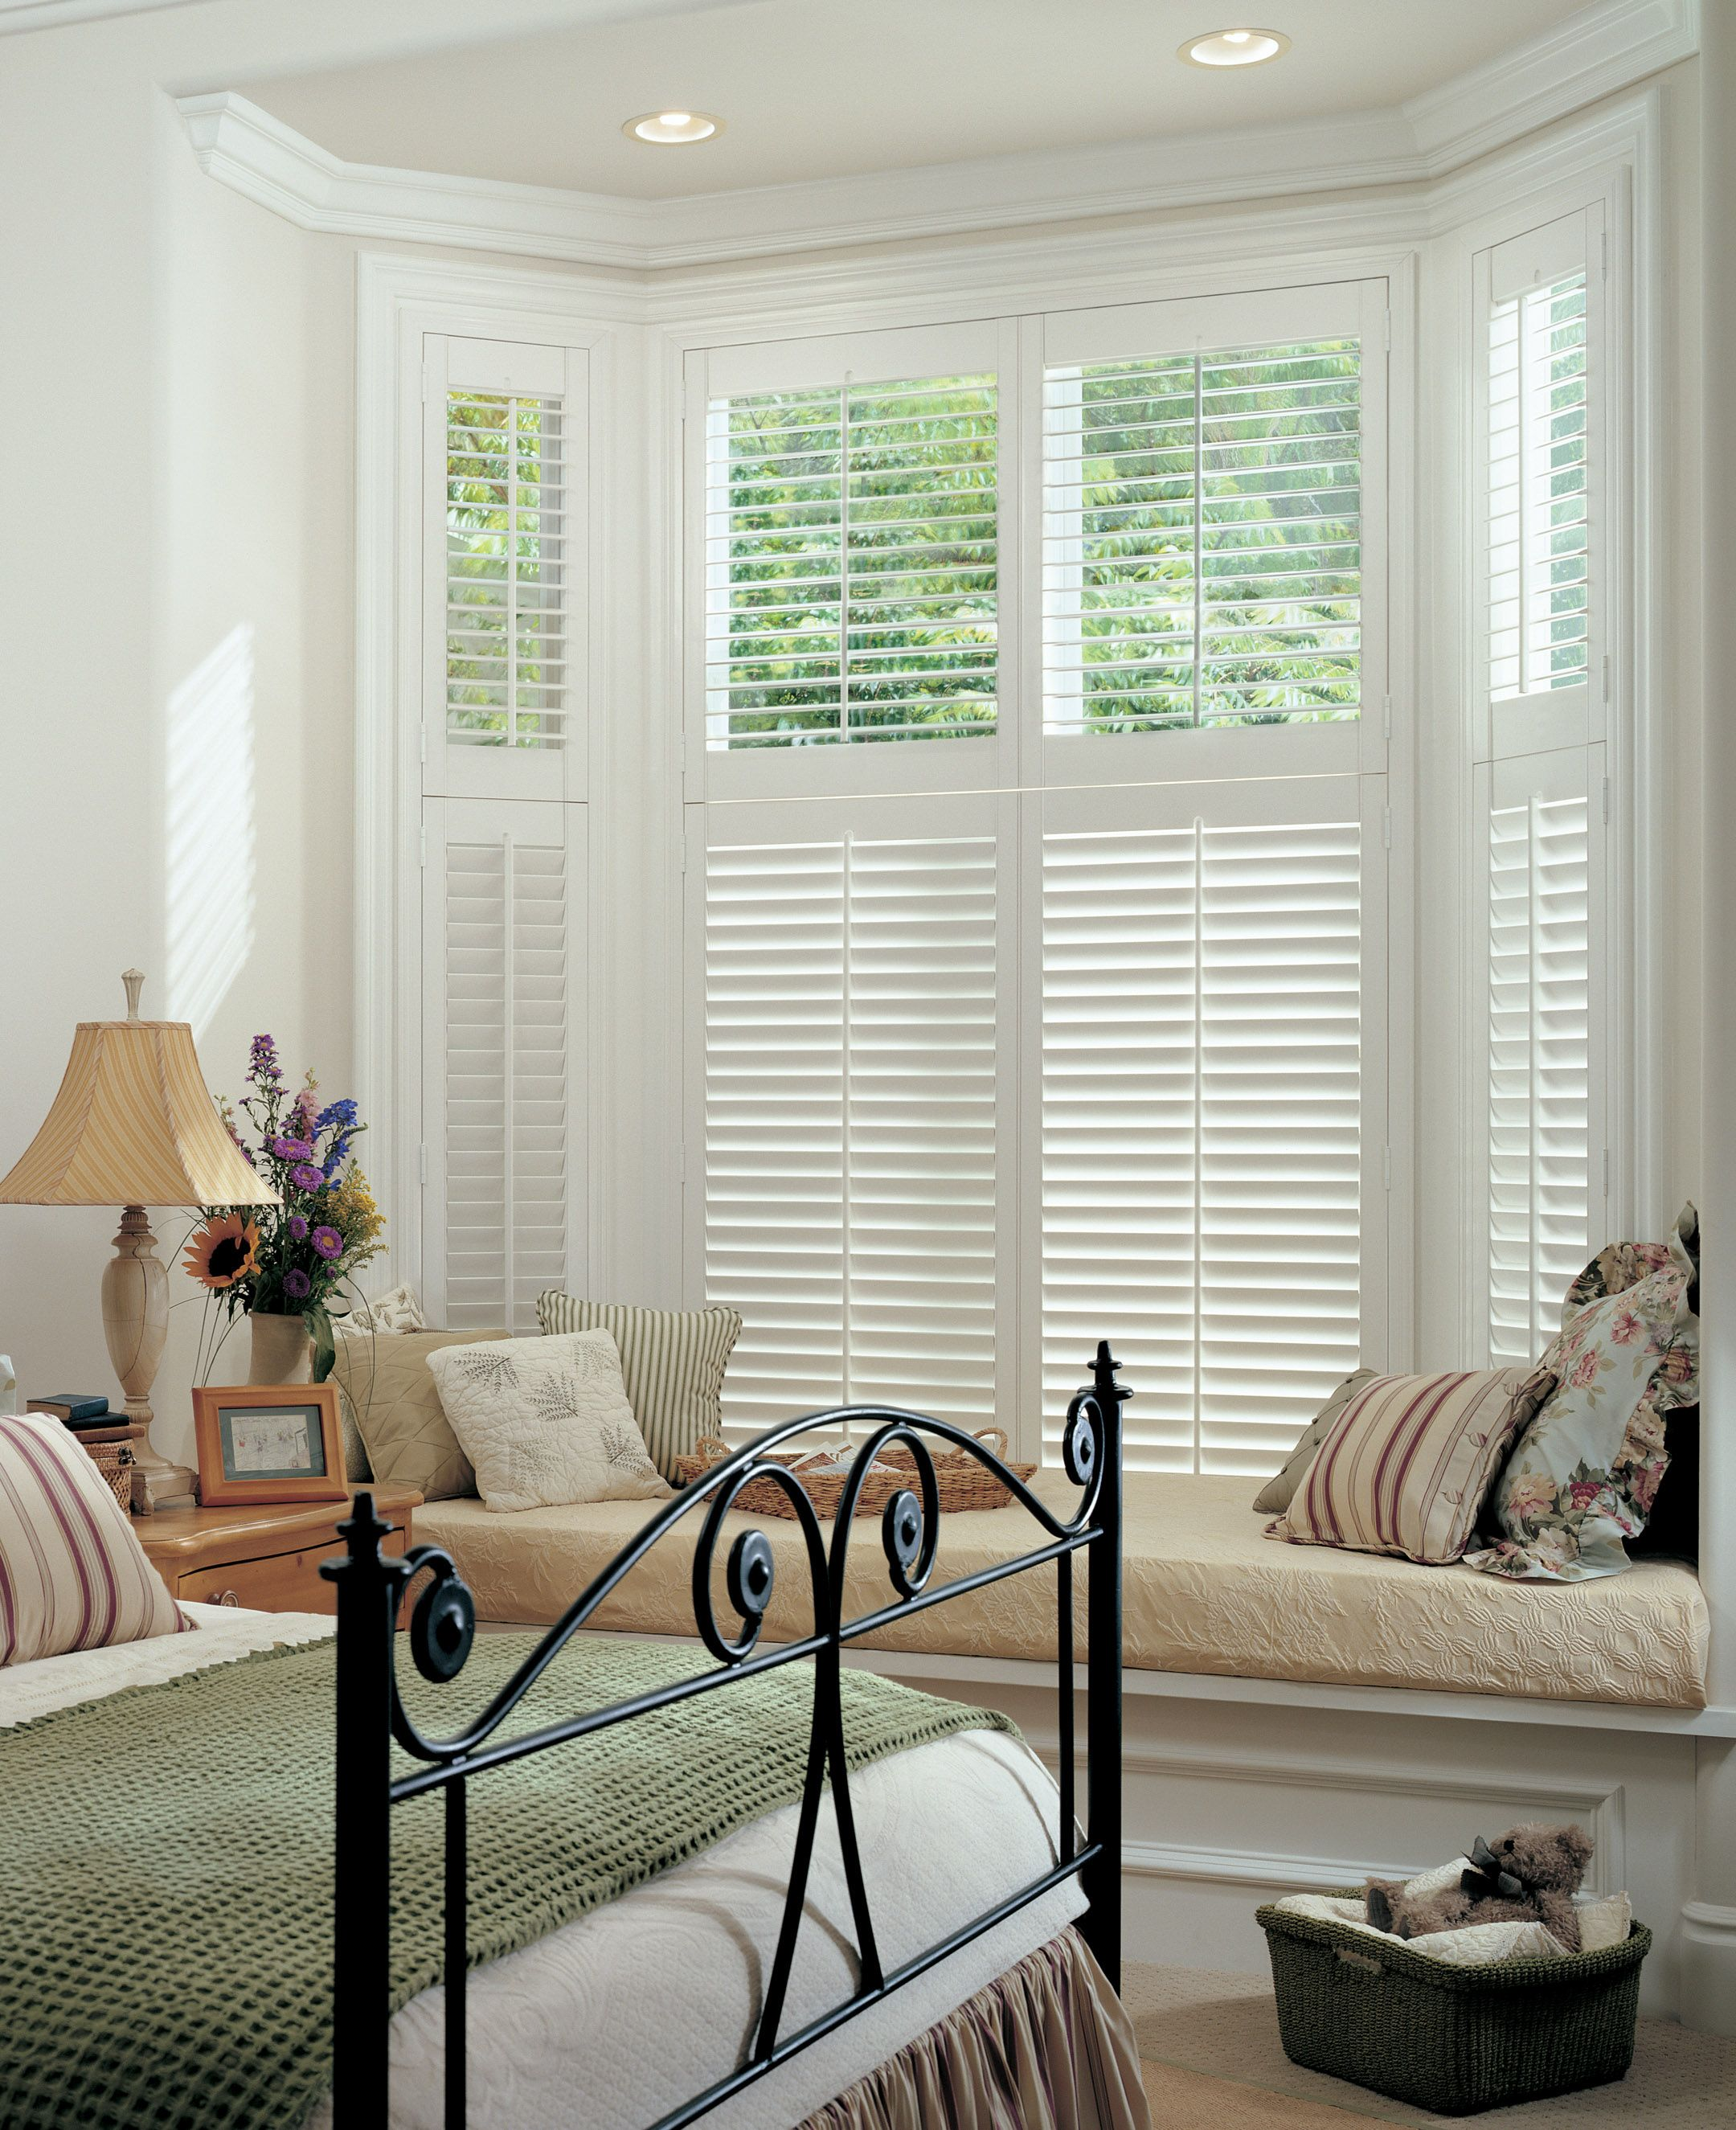 Wooden Shutters Products Luxaflex Living Room Blinds Interior Shutters Bay Window Treatments #shutters #for #living #room